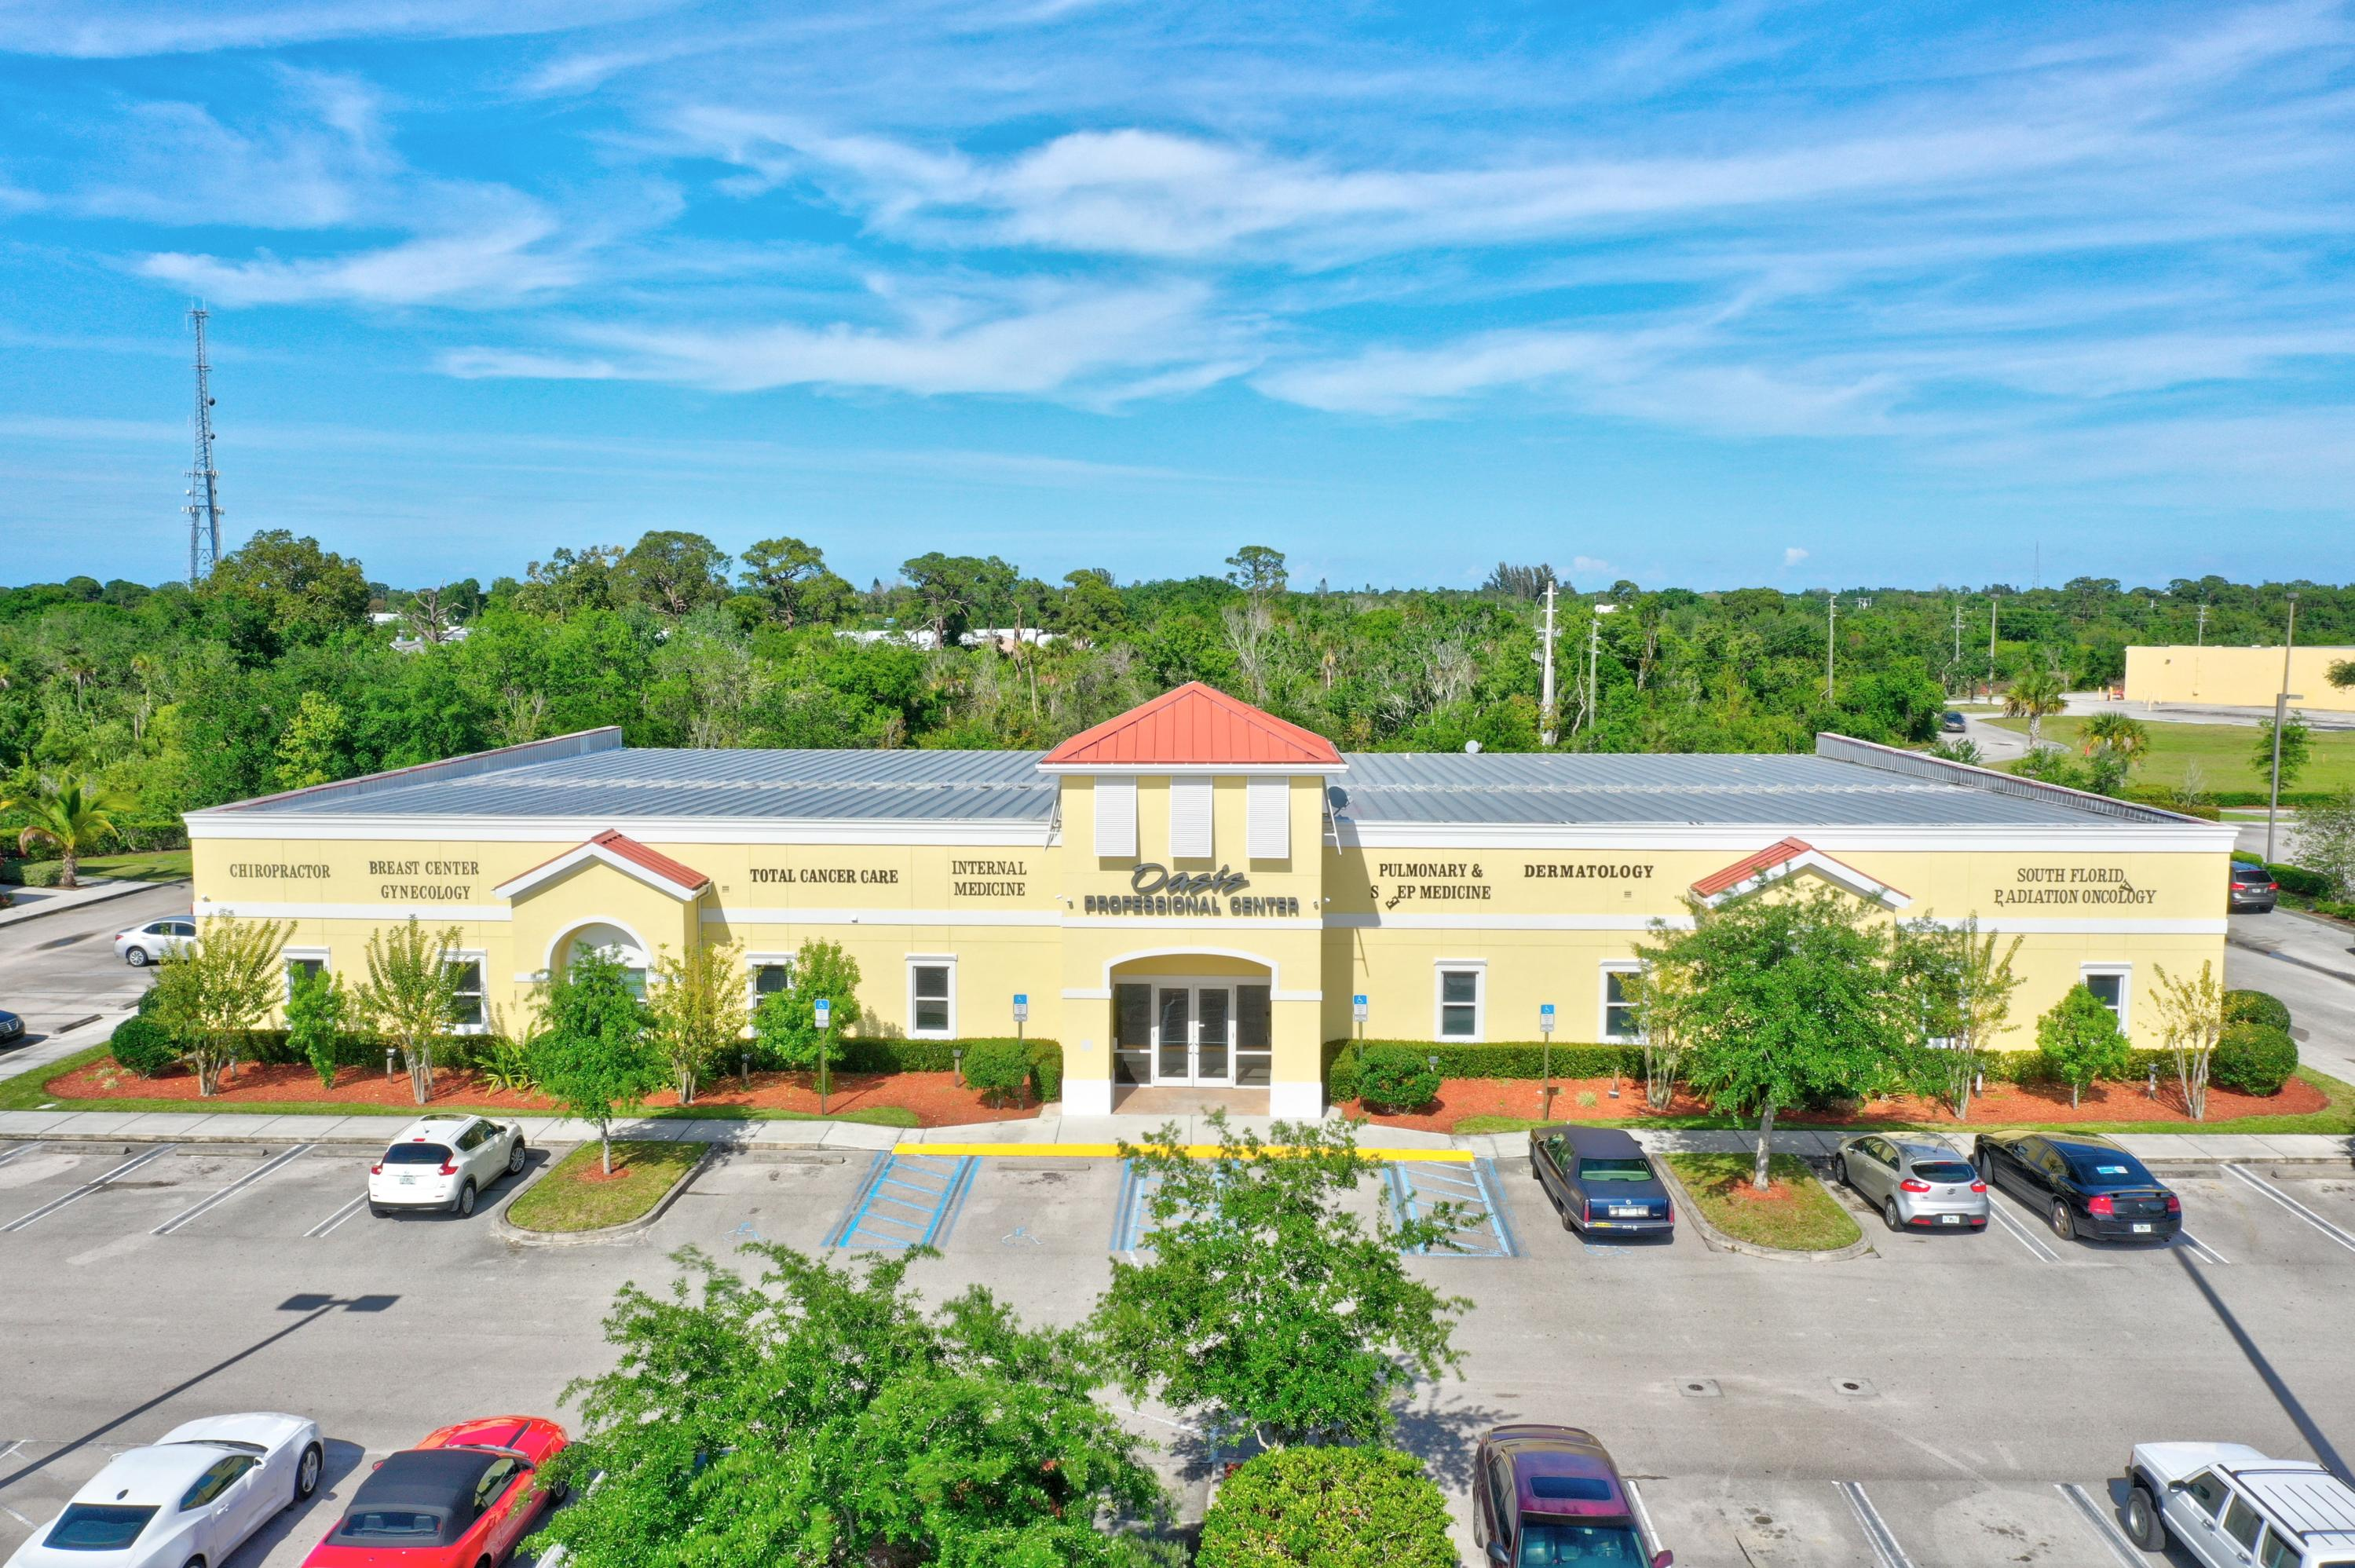 Great Investment opportunity! Join other Medical Professionals in this professional office building located directly on US 1, just south of the future Crosstown Parkway intersection and just a mile to St Lucie Medical Hospital.Suite 101 allows for an owner occupant to move in right away, or lease with option to purchase. Suite 101 includes a waiting room, Reception Area, 4 Exam Rooms plus 2 additional rooms for offices or exam rooms, Kitchen, 2 open rooms and 2 Executive Offices with shared private bath and kitchenette.Suites 101 and 103 are both available for sale, or lease/purchase Suite 101 alone.